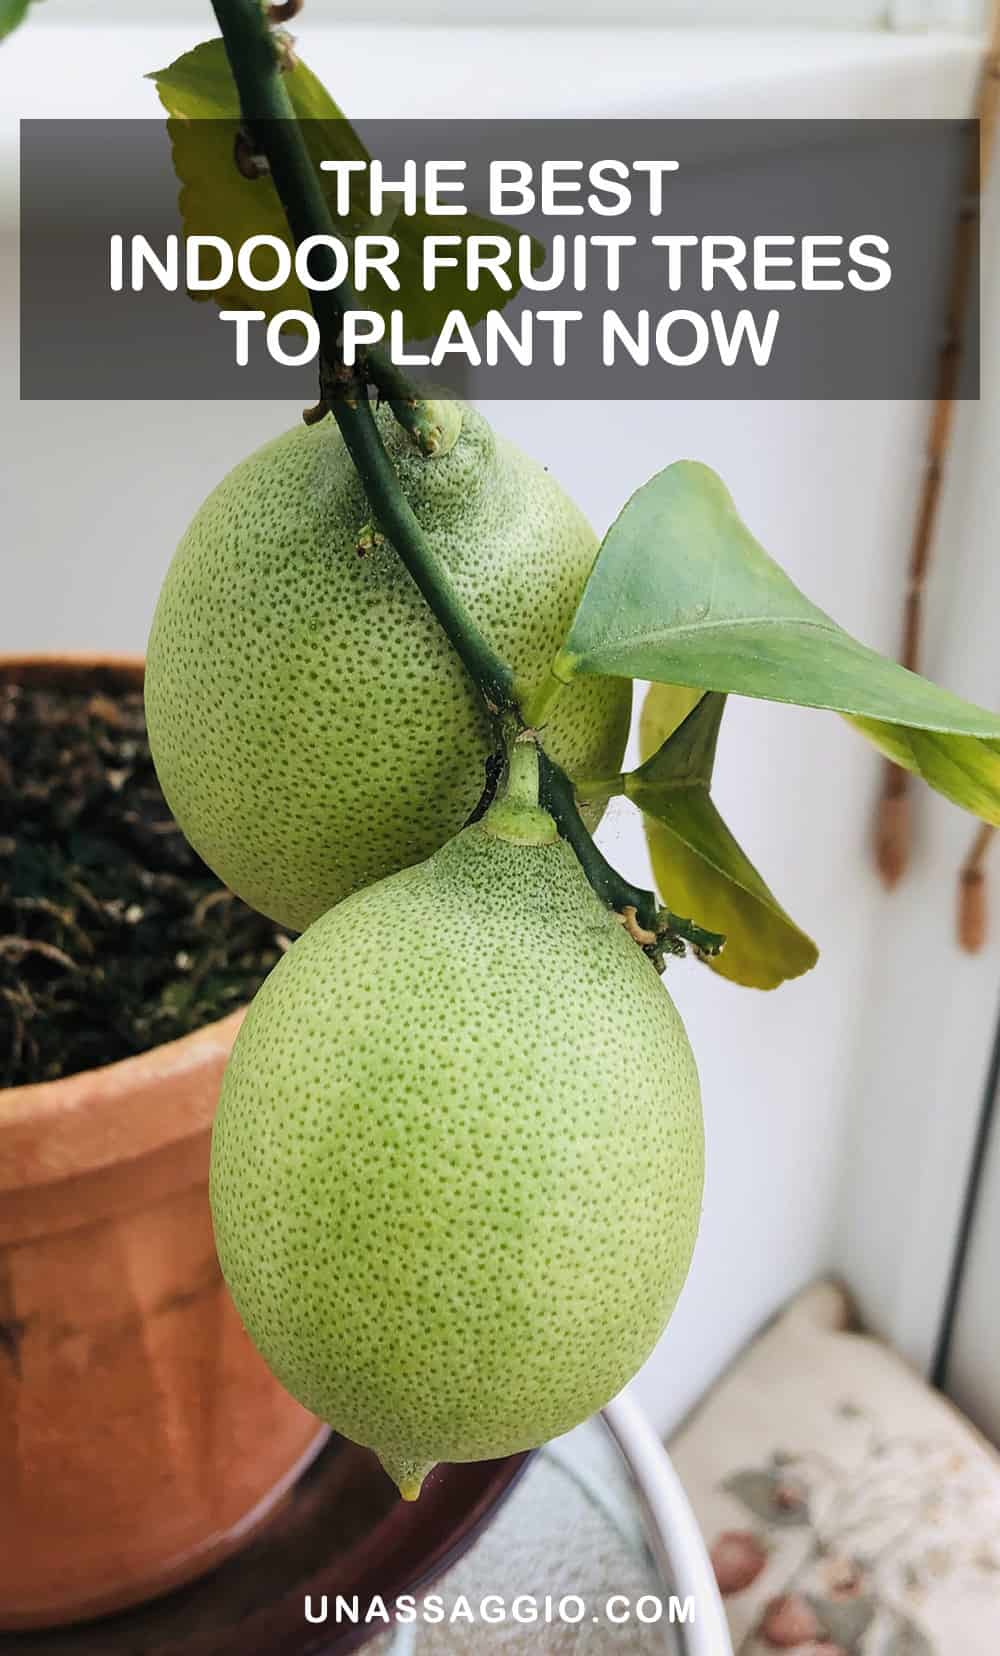 The Best Indoor Fruit Trees to Plant Now